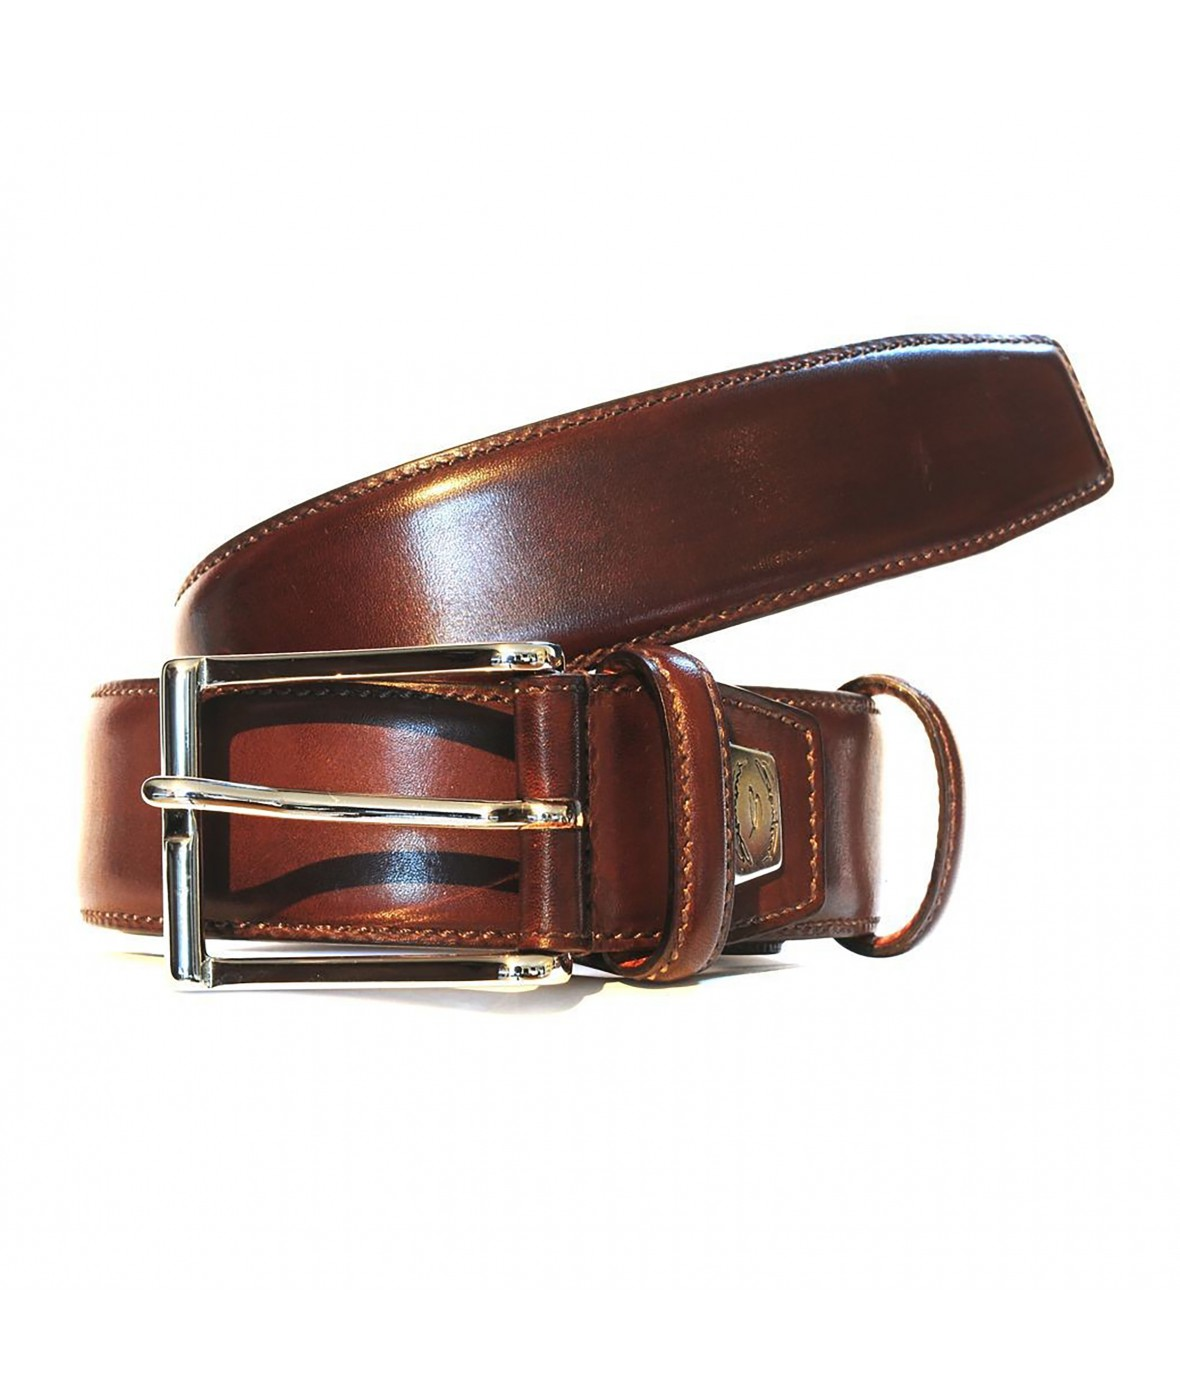 Santoni Belt Leather (370)